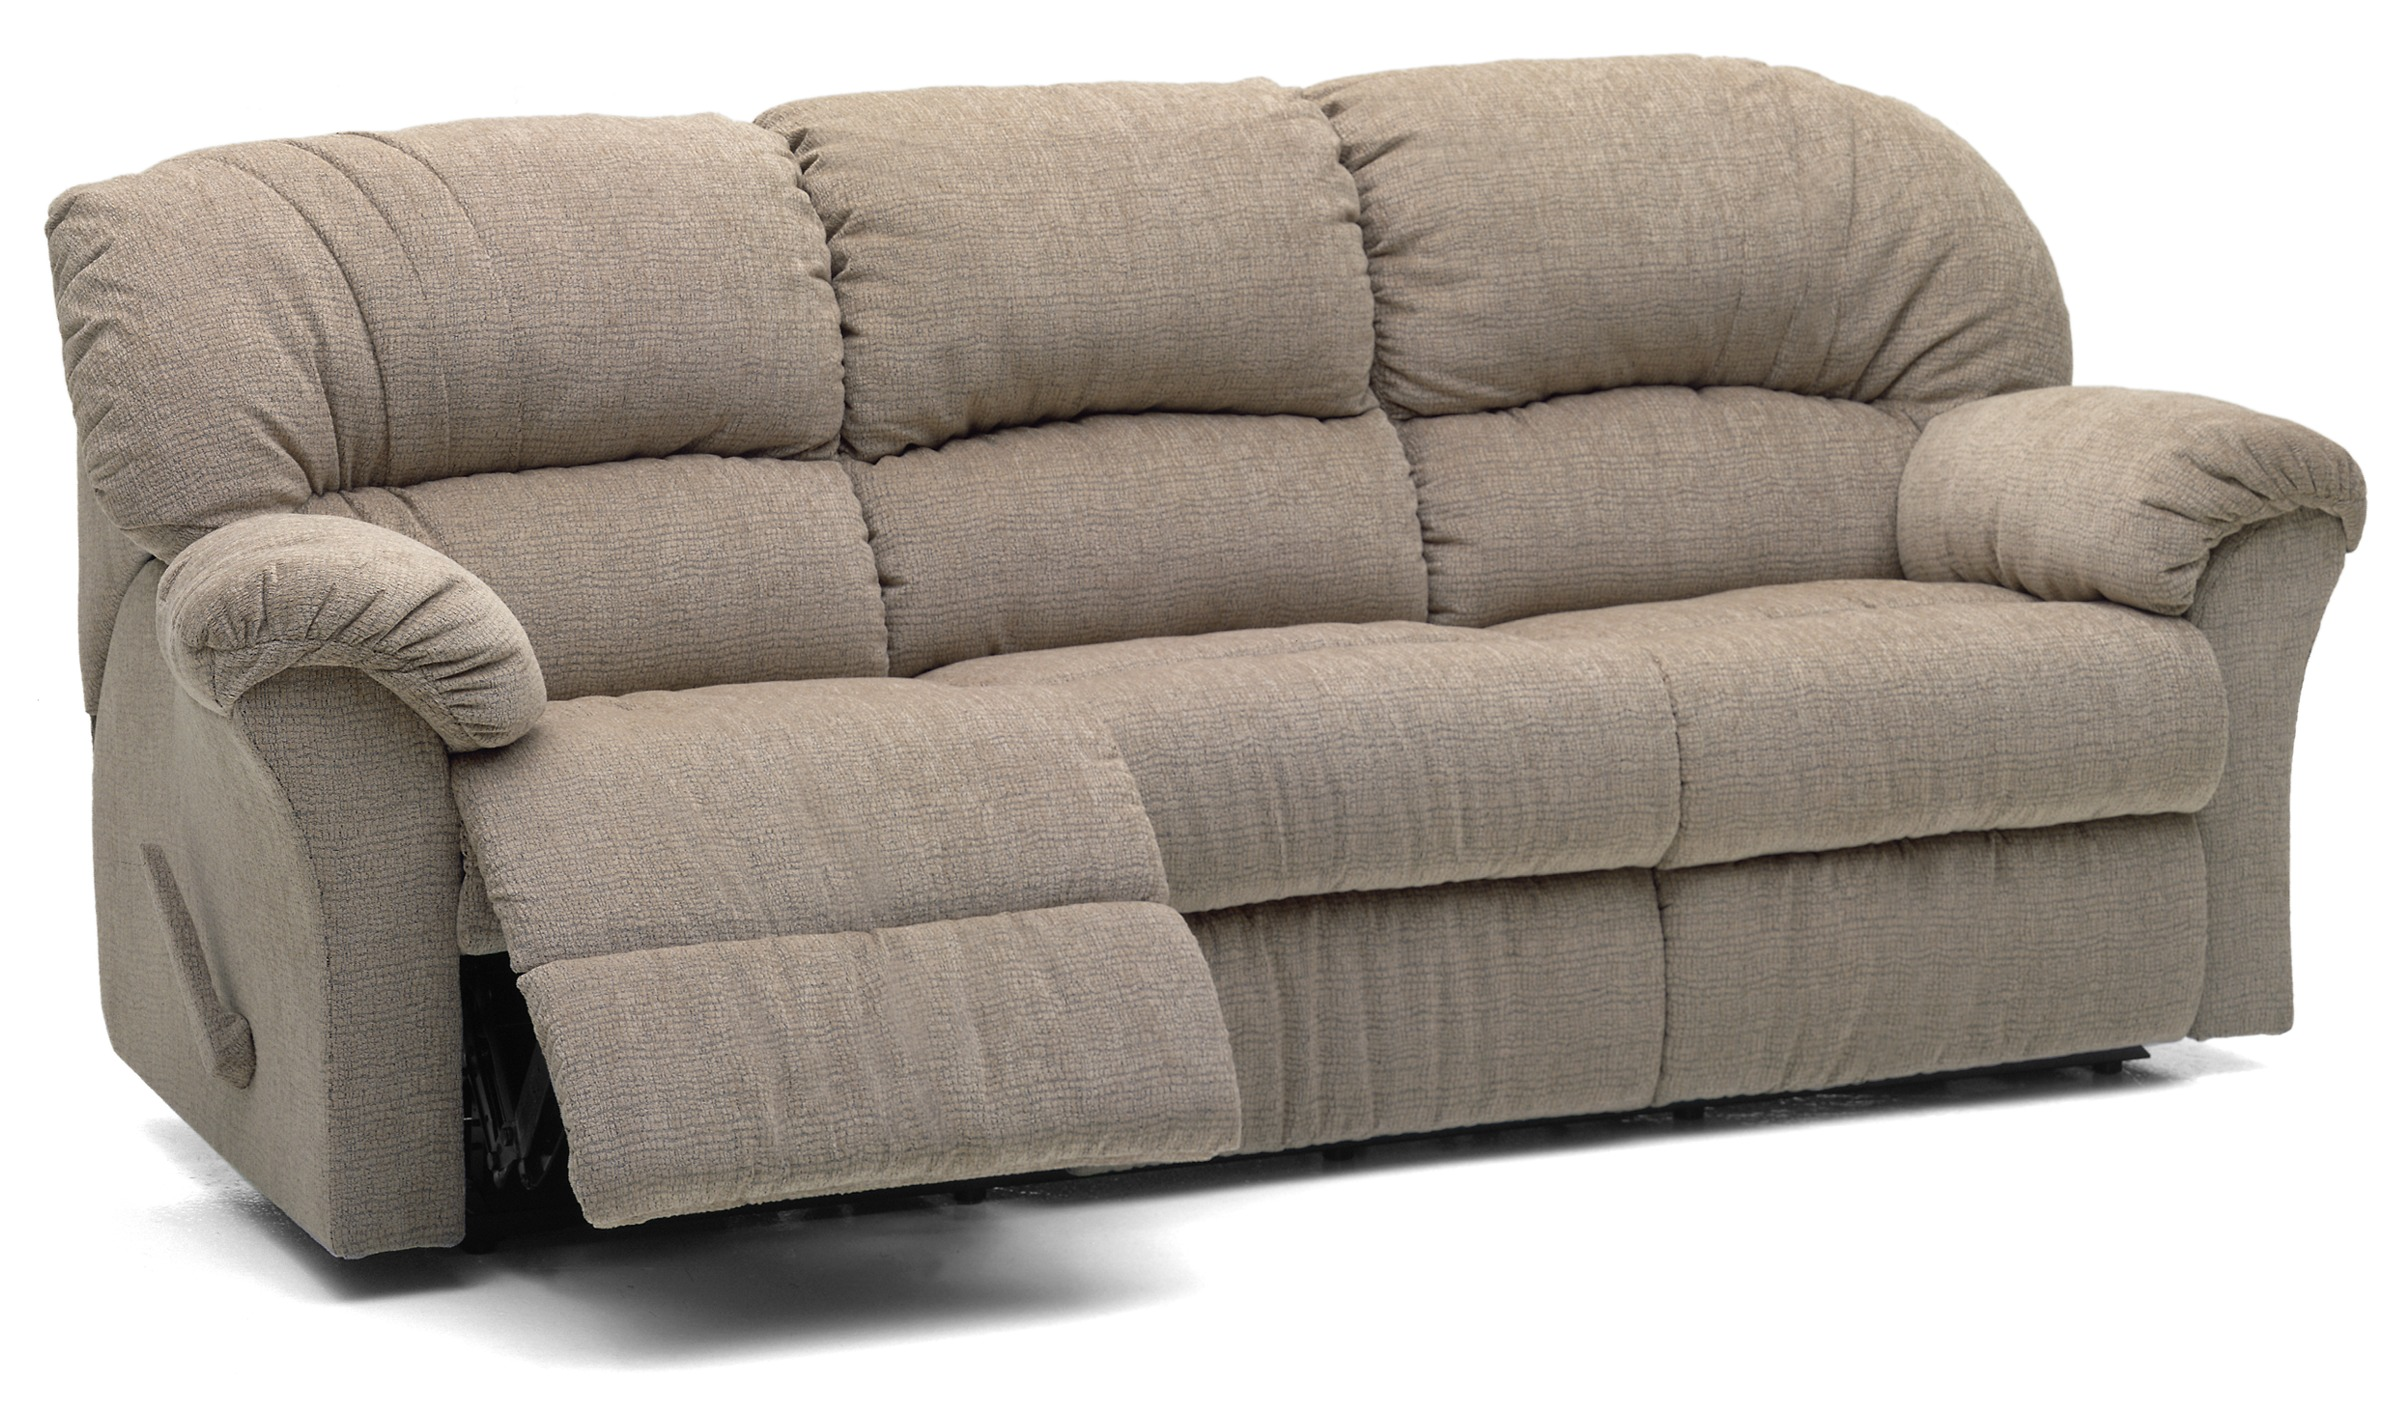 Sofa With Recliner Callahan 41072 46072 Reclining Sofa Sofas And Sectionals